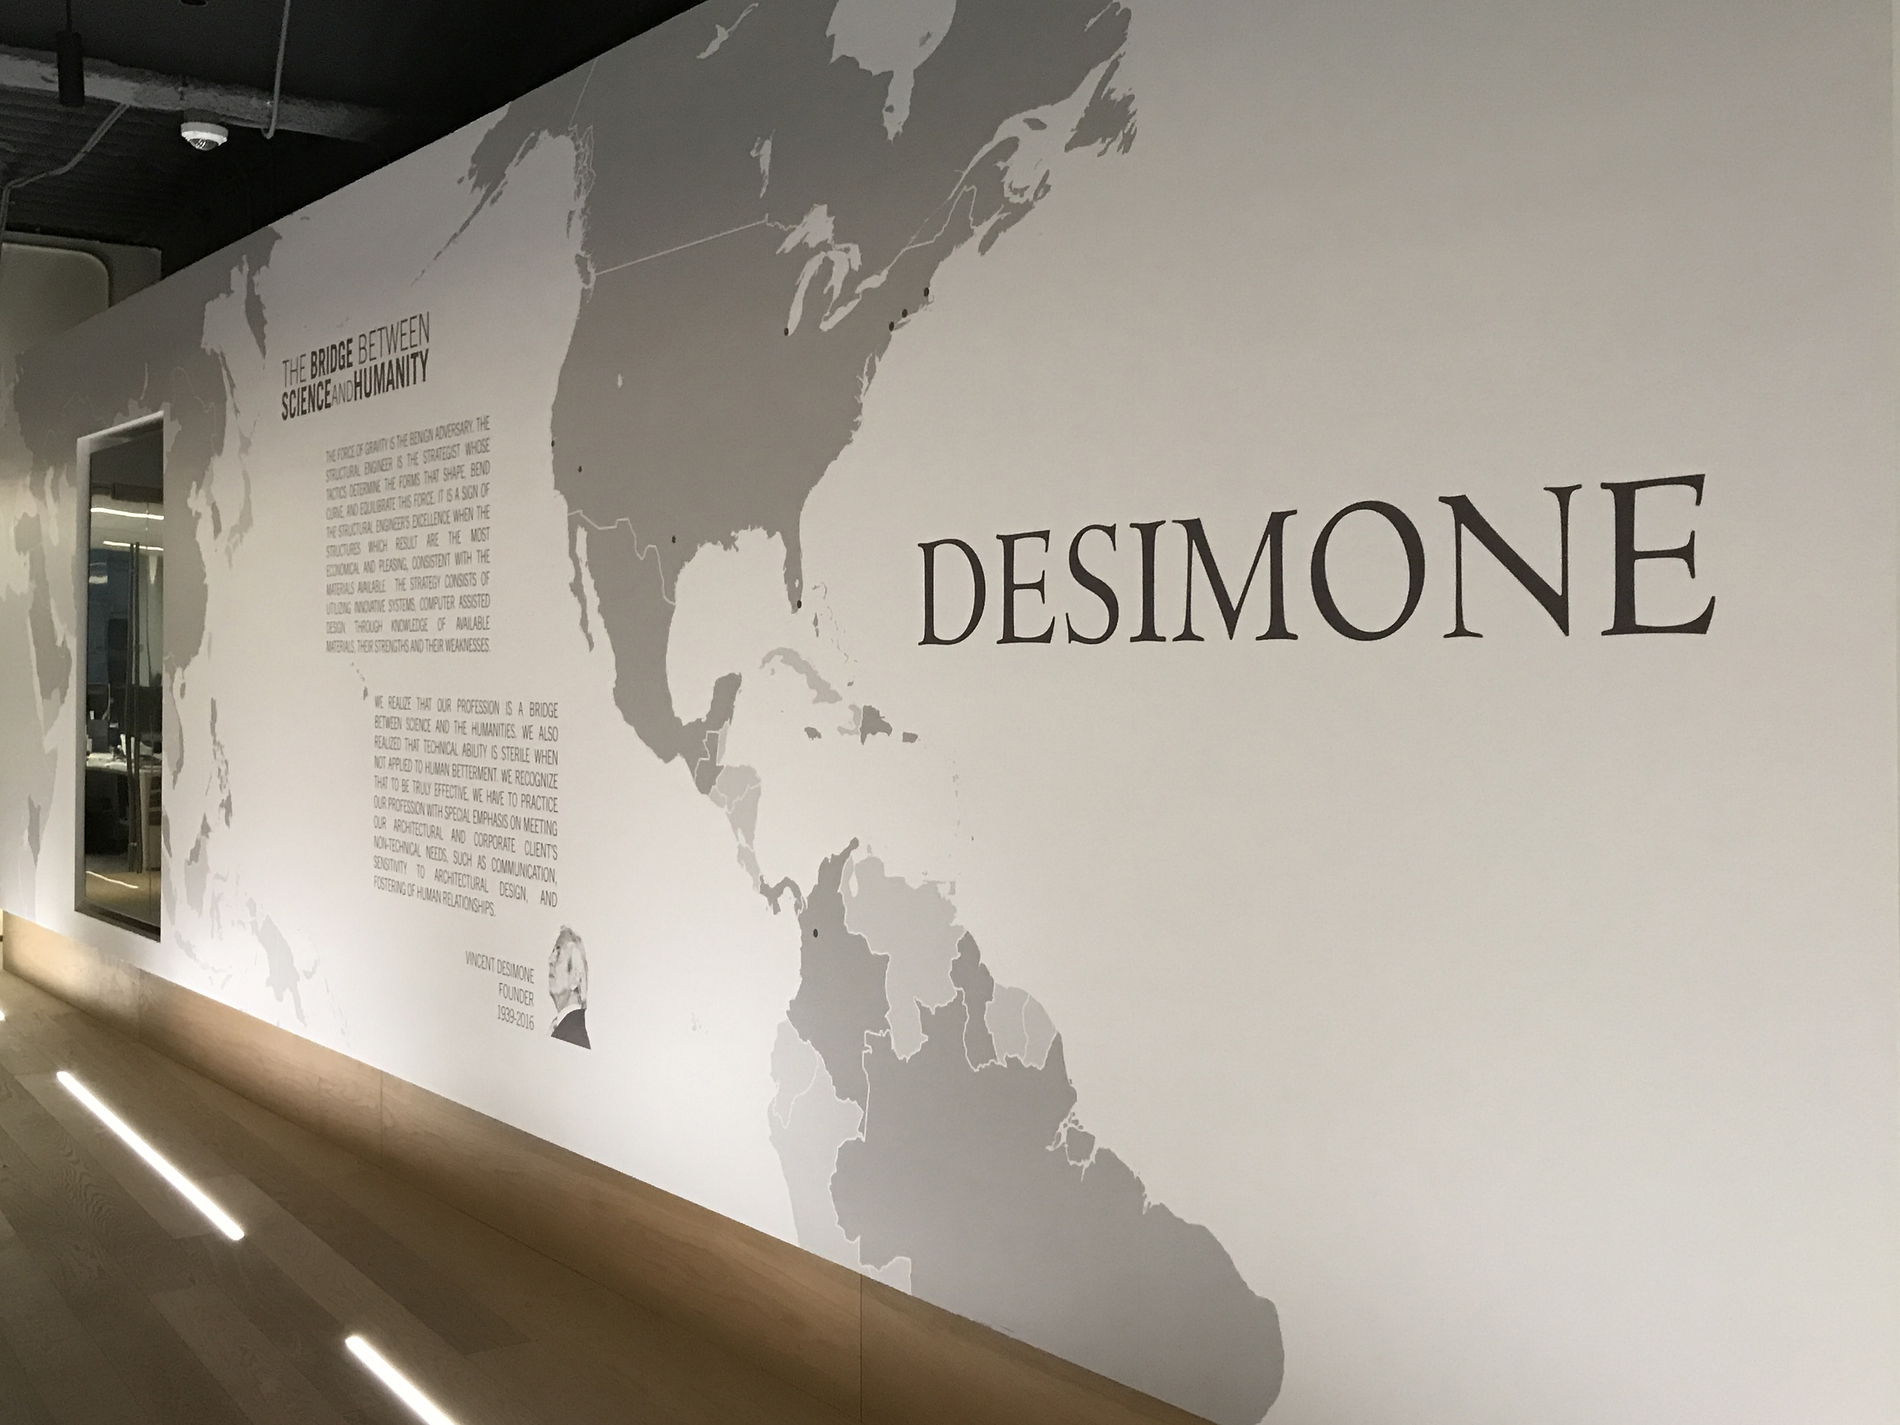 DeSimone Consulting Engineers